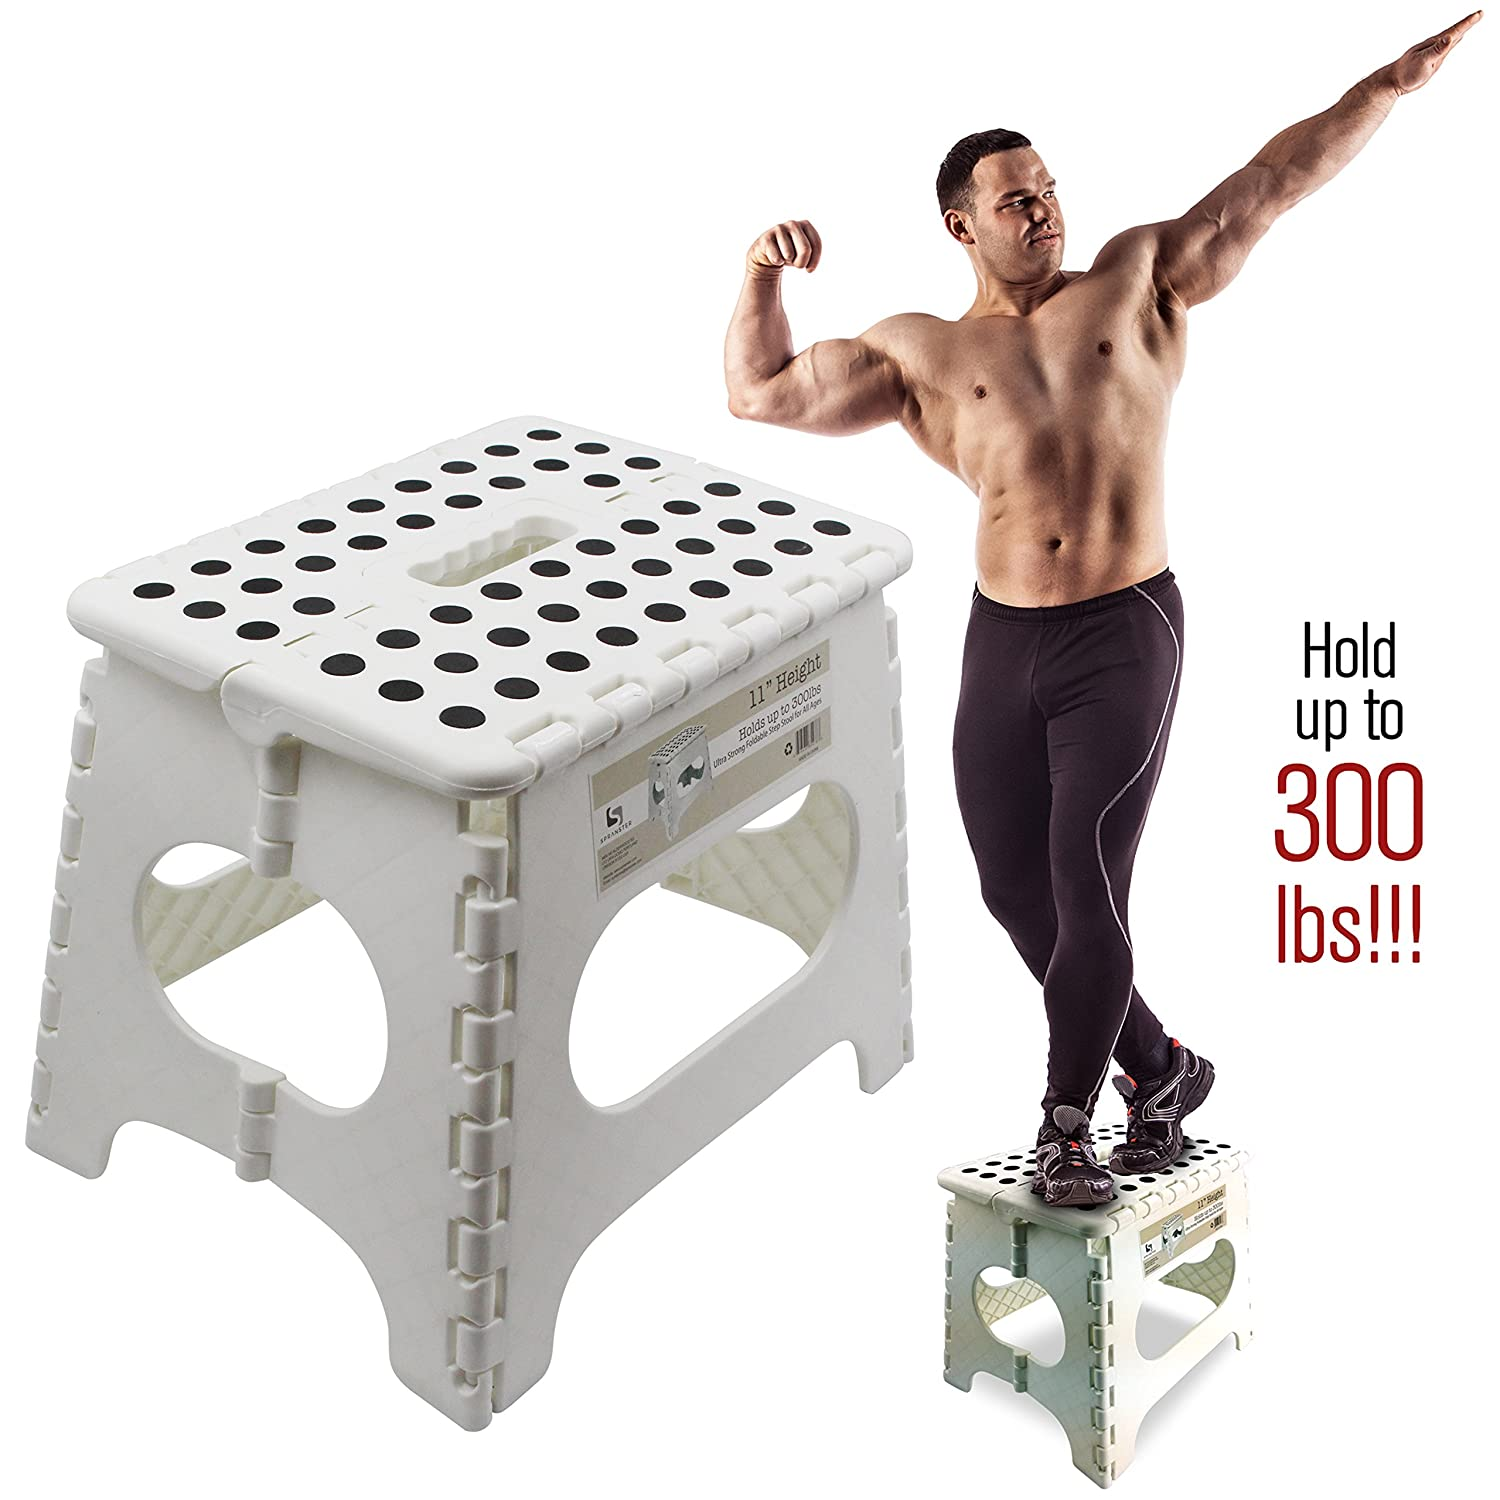 Super Strong Folding Step Stool - 11  Height - Holds up to 300 Lb - The lightweight foldable step stool is sturdy enough to support adults u0026 safe enough for ...  sc 1 st  Amazon.com & Folding Stools | Amazon.com islam-shia.org